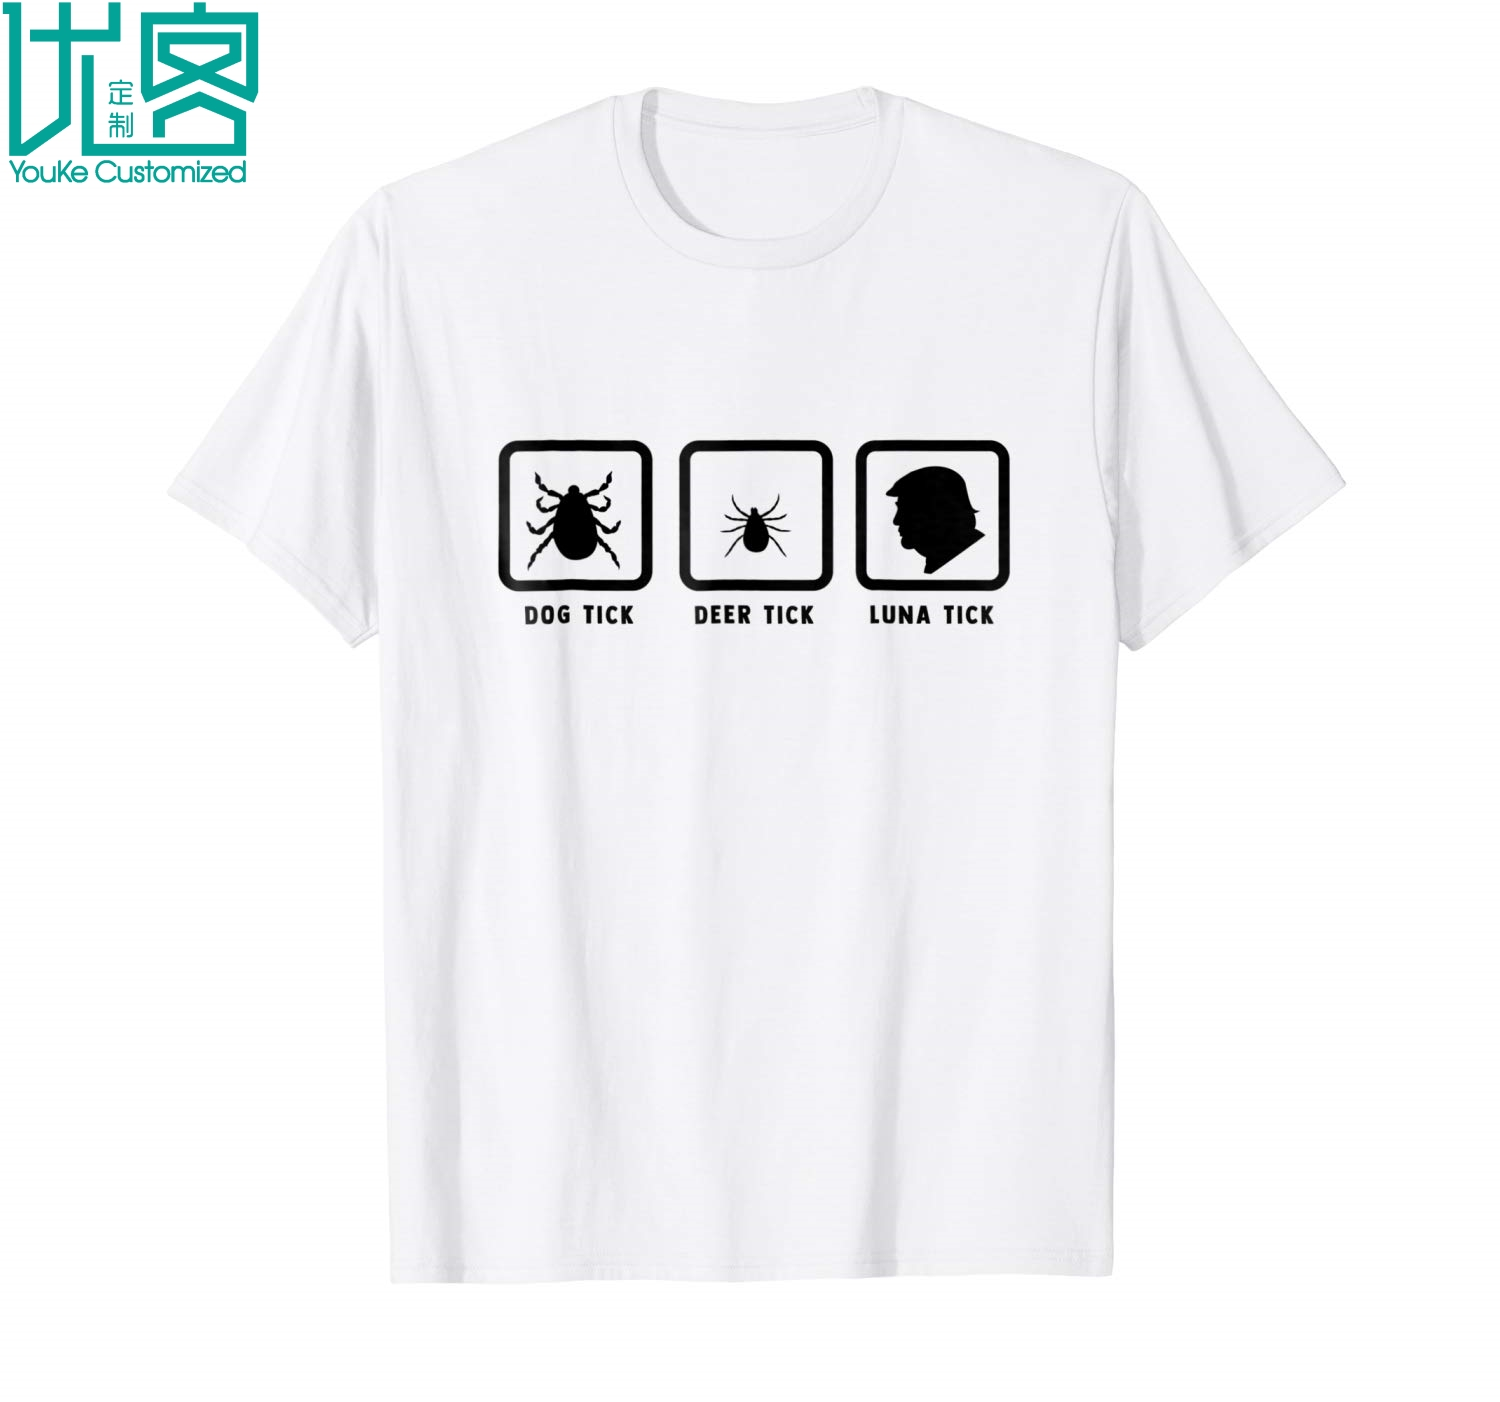 Lunatic Dog Tick Pun Joke T Shirt Anti Trump Tee Shirt 2019 Summer Men's Short Sleeve T-Shirt image